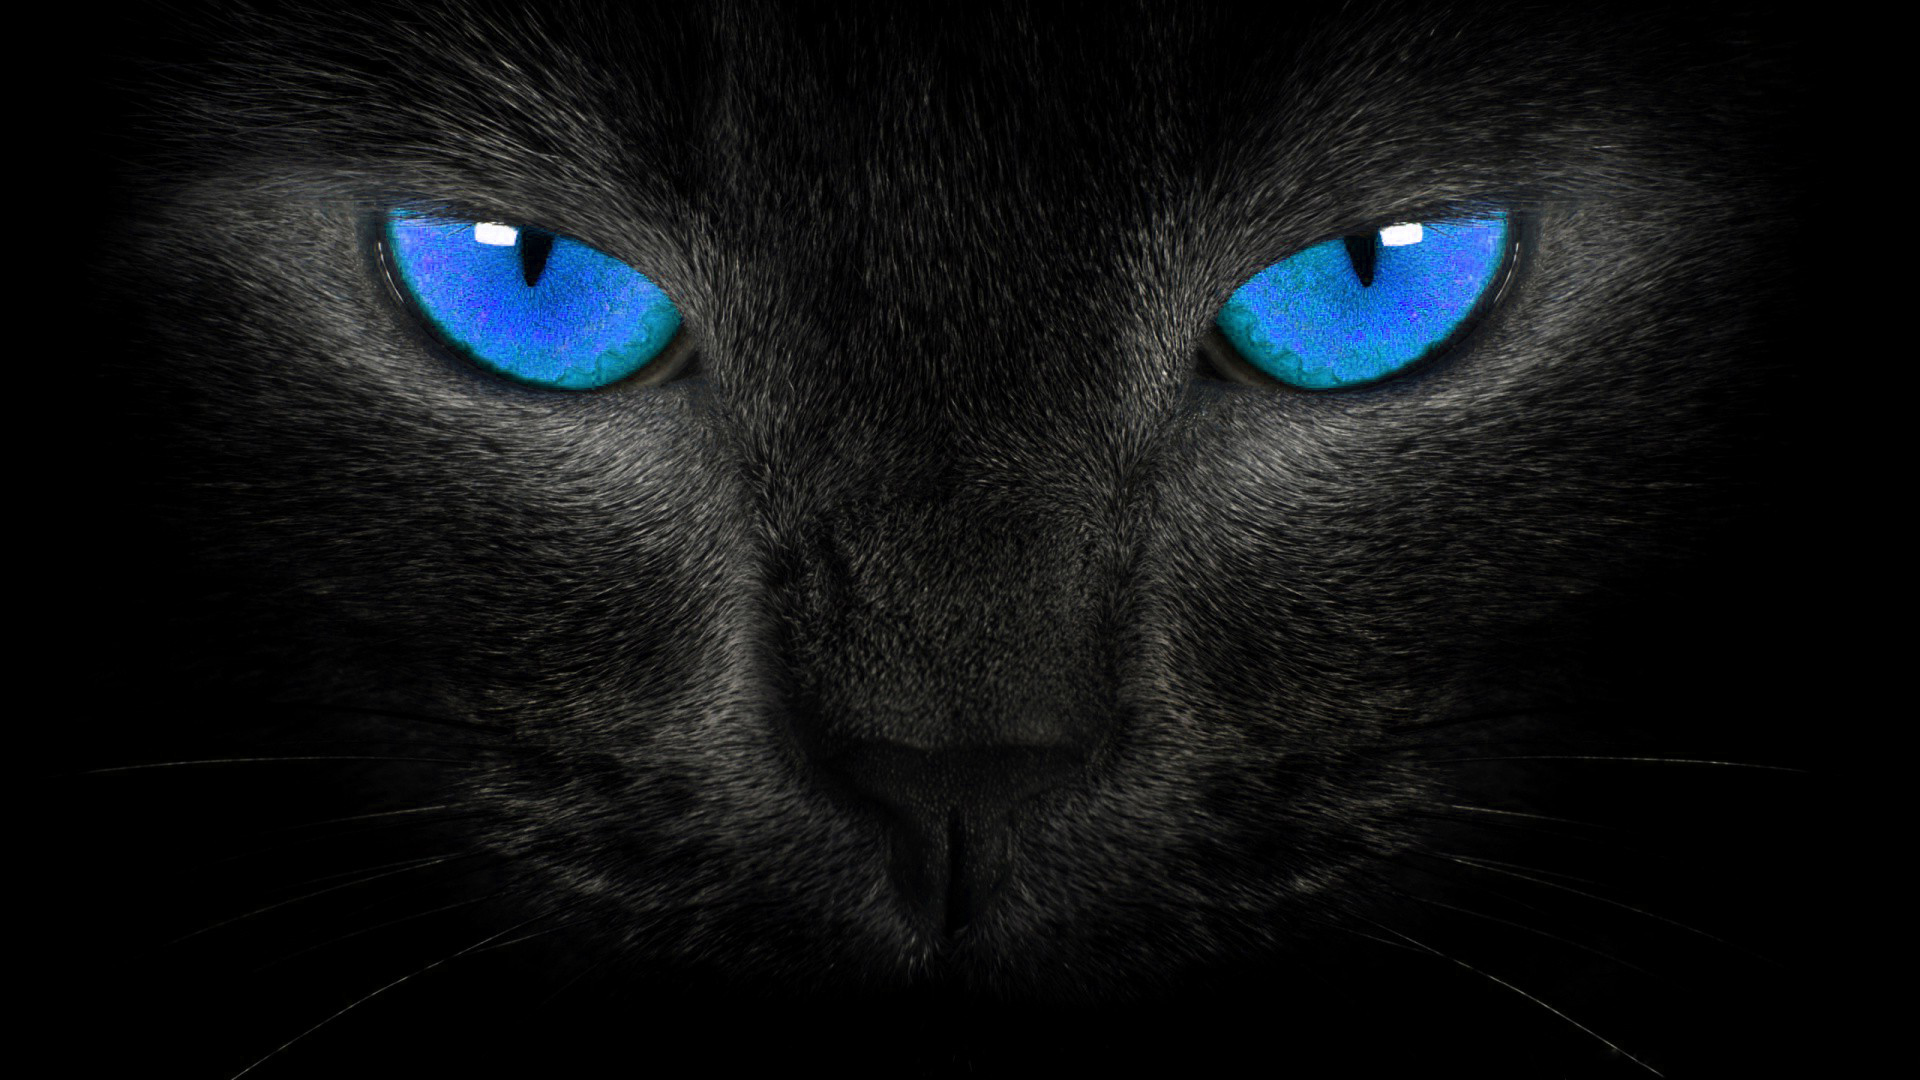 HD Widescreen Cat Wallpaper - WallpaperSafari